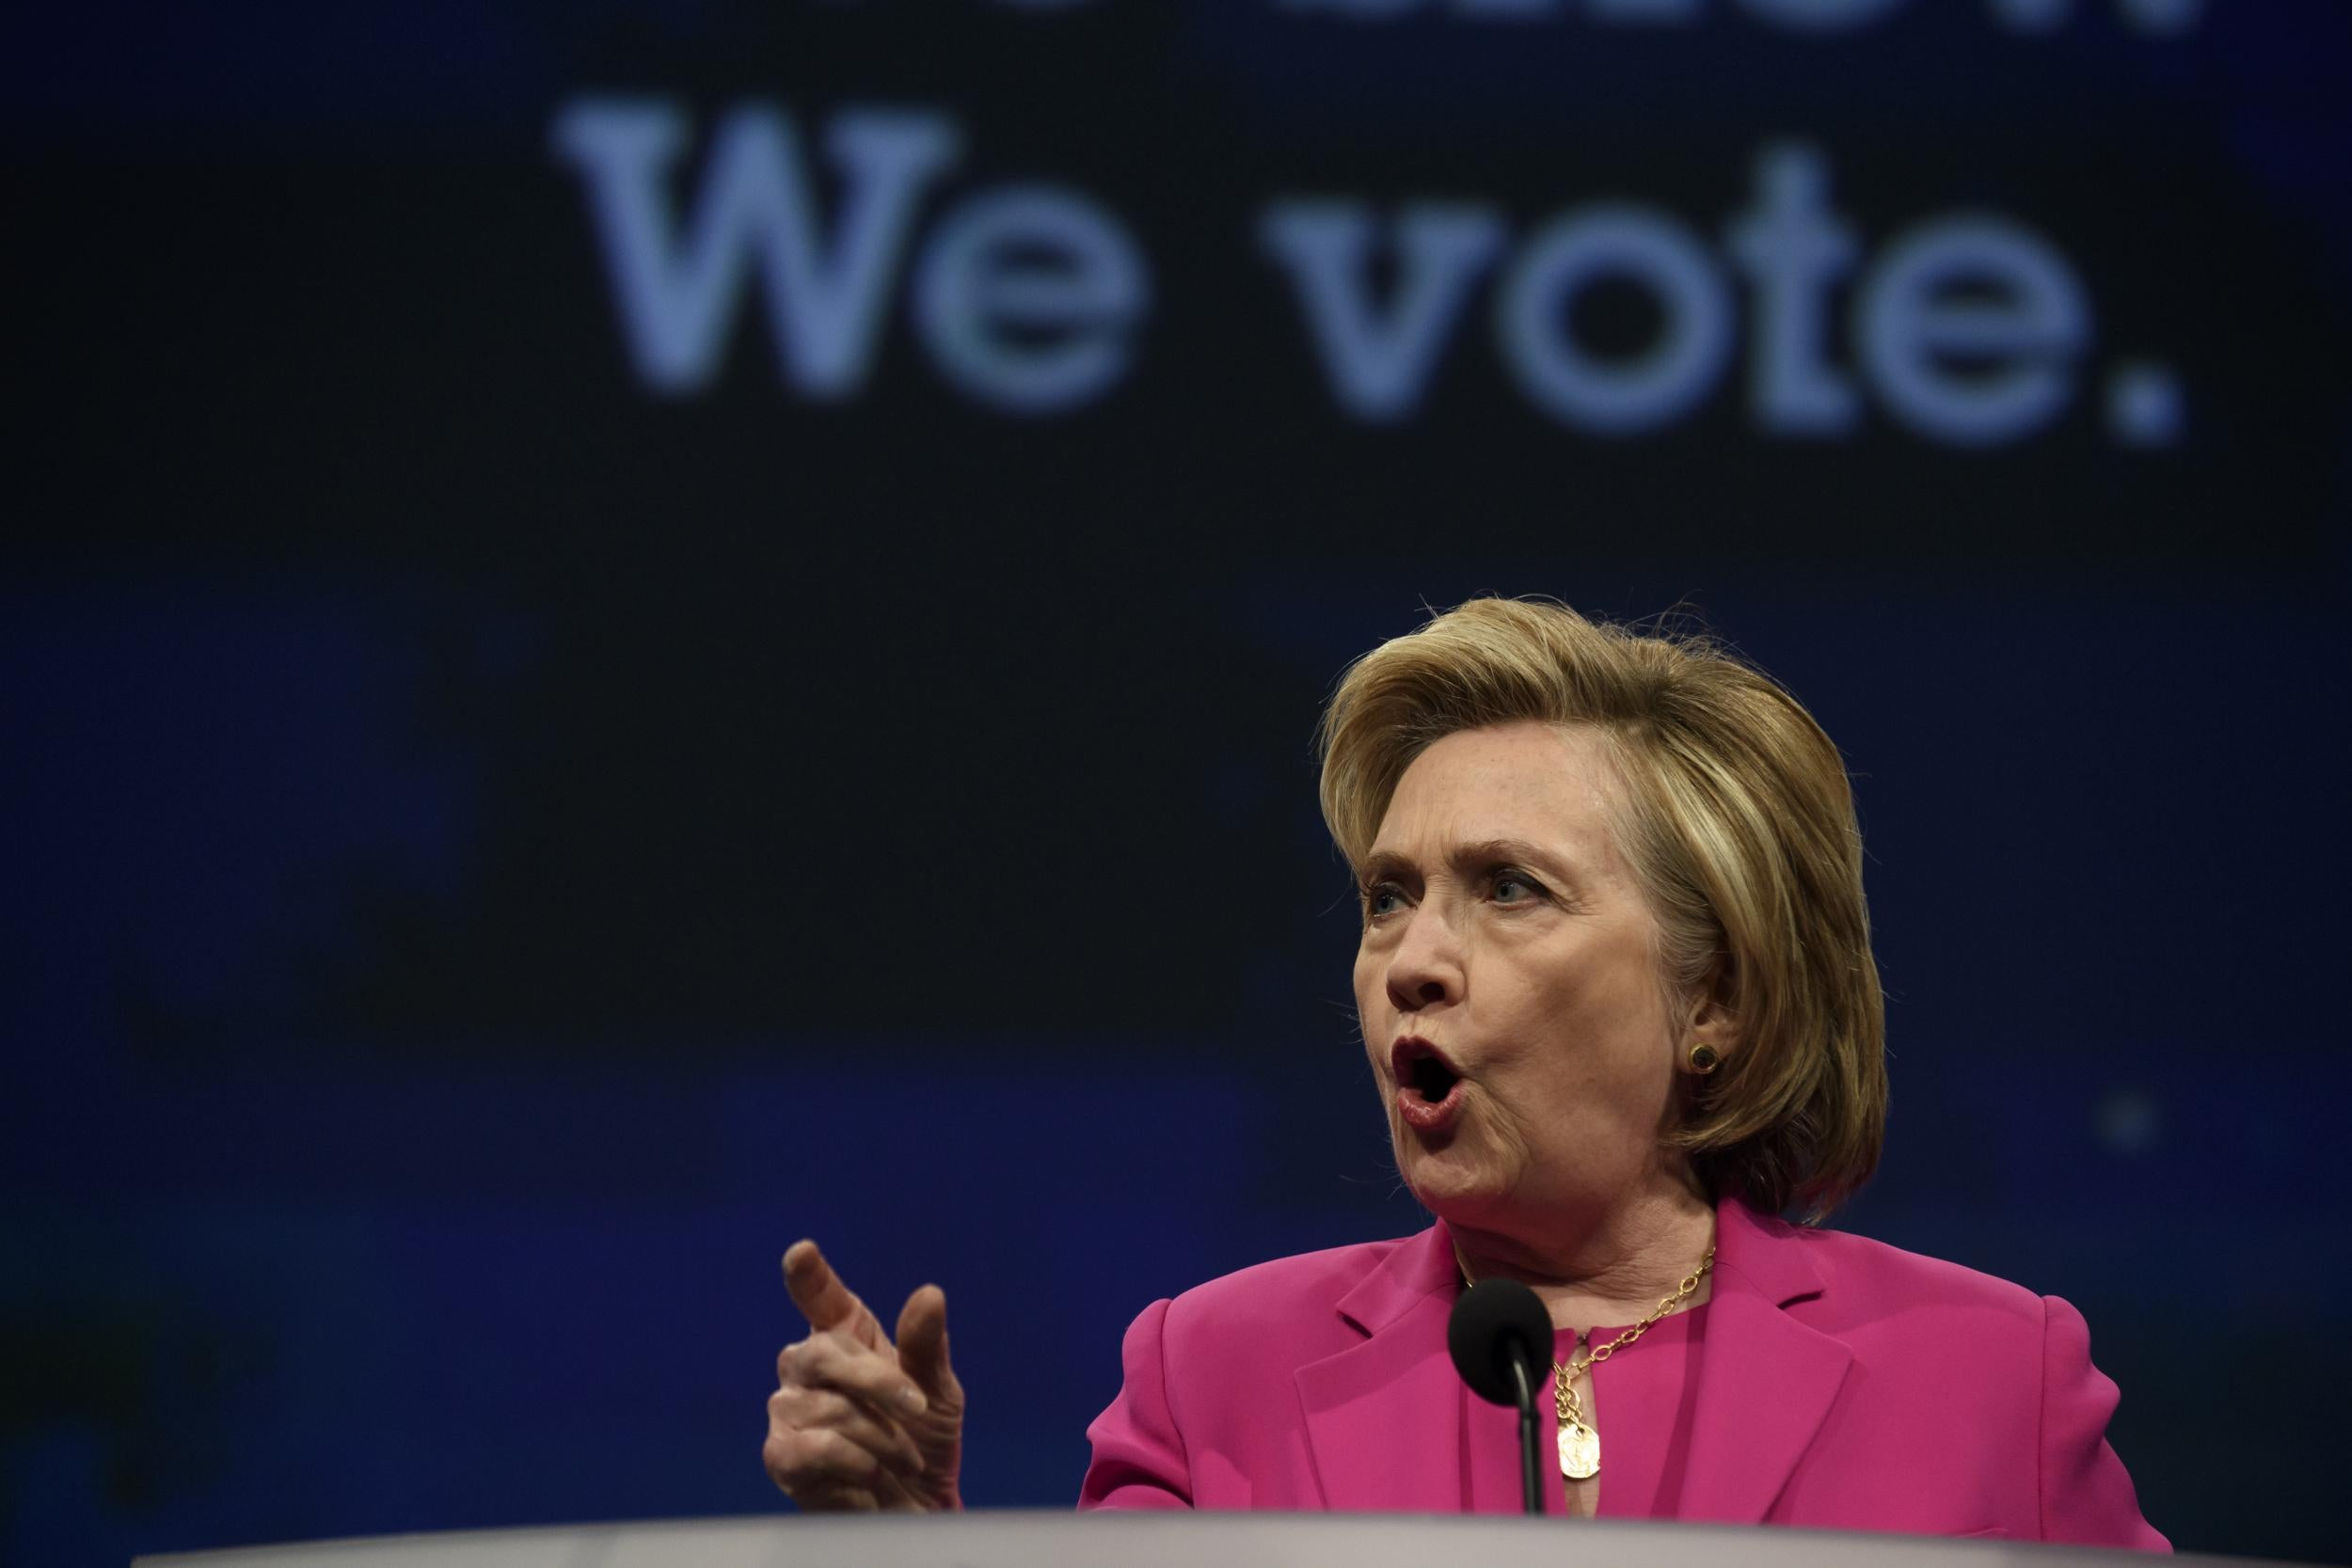 Hillary Clinton Claims American Democracy Is In Crisis In Searing